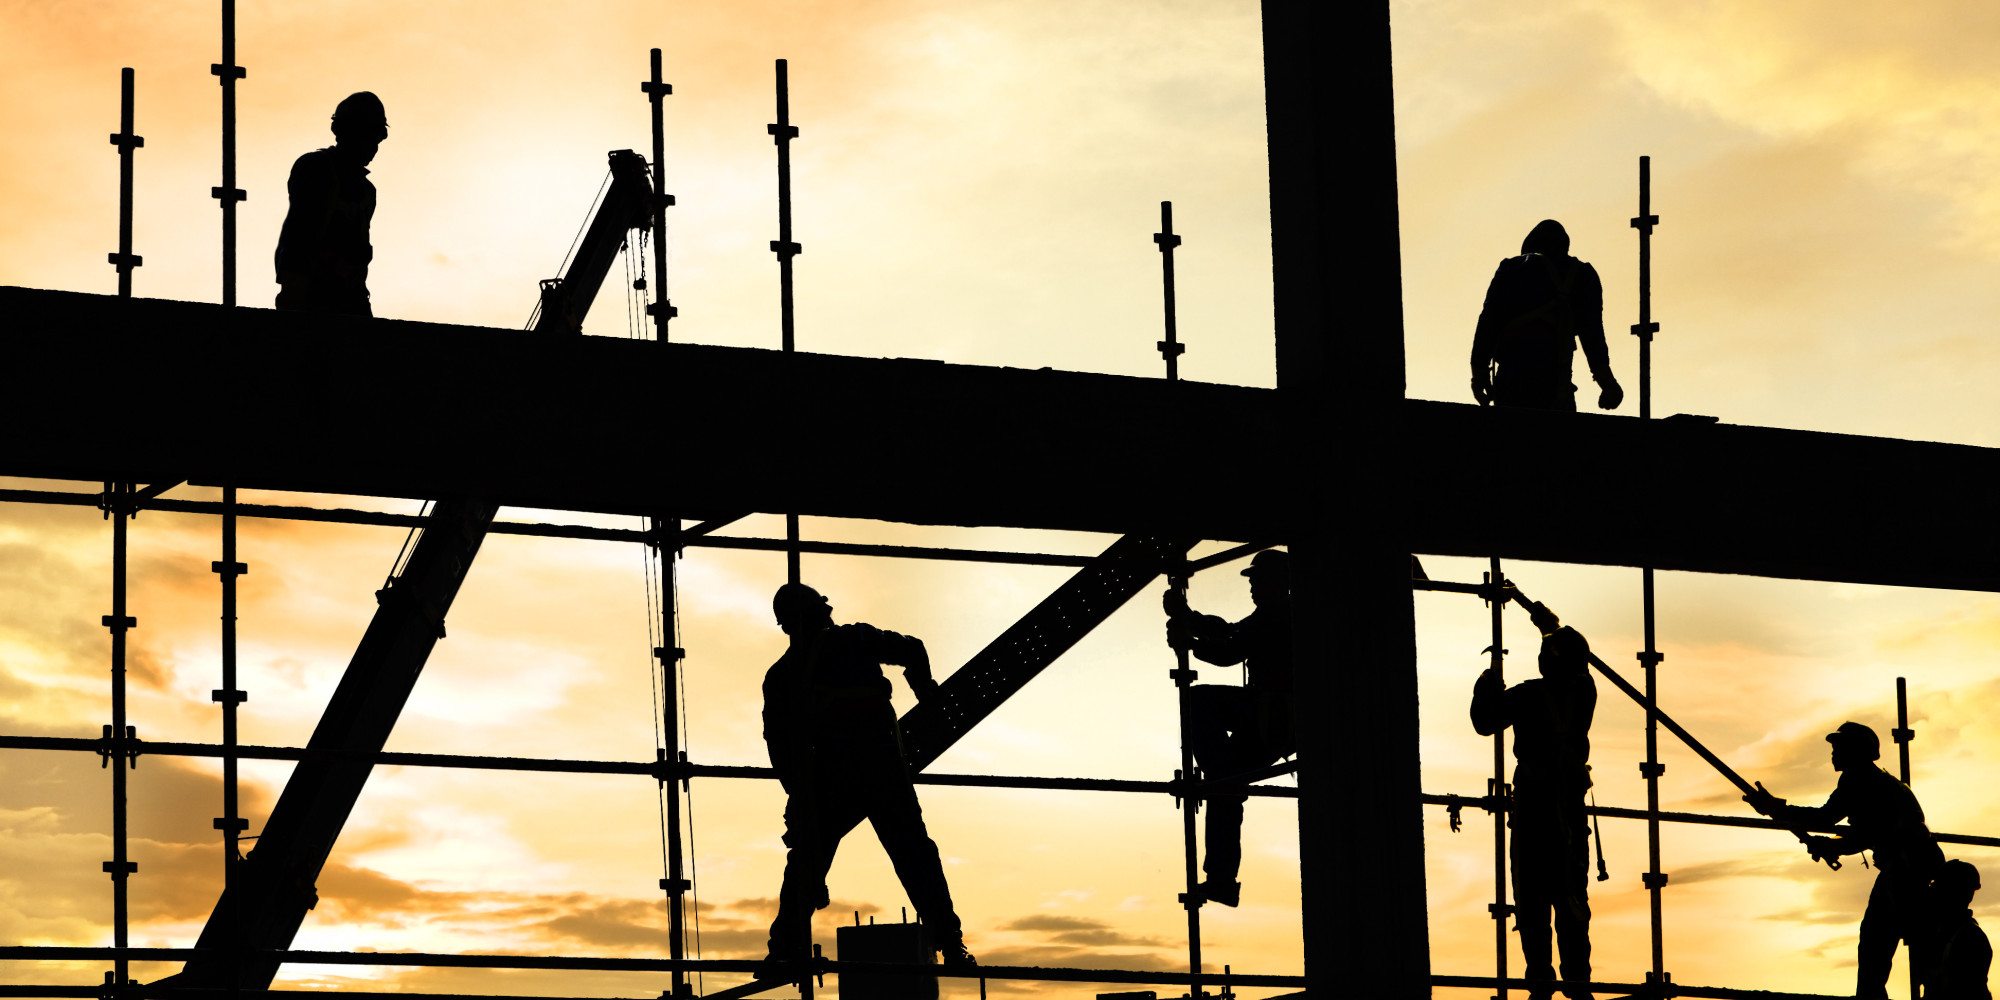 Building Construction Workers : Canada building permits take an unexpected dive